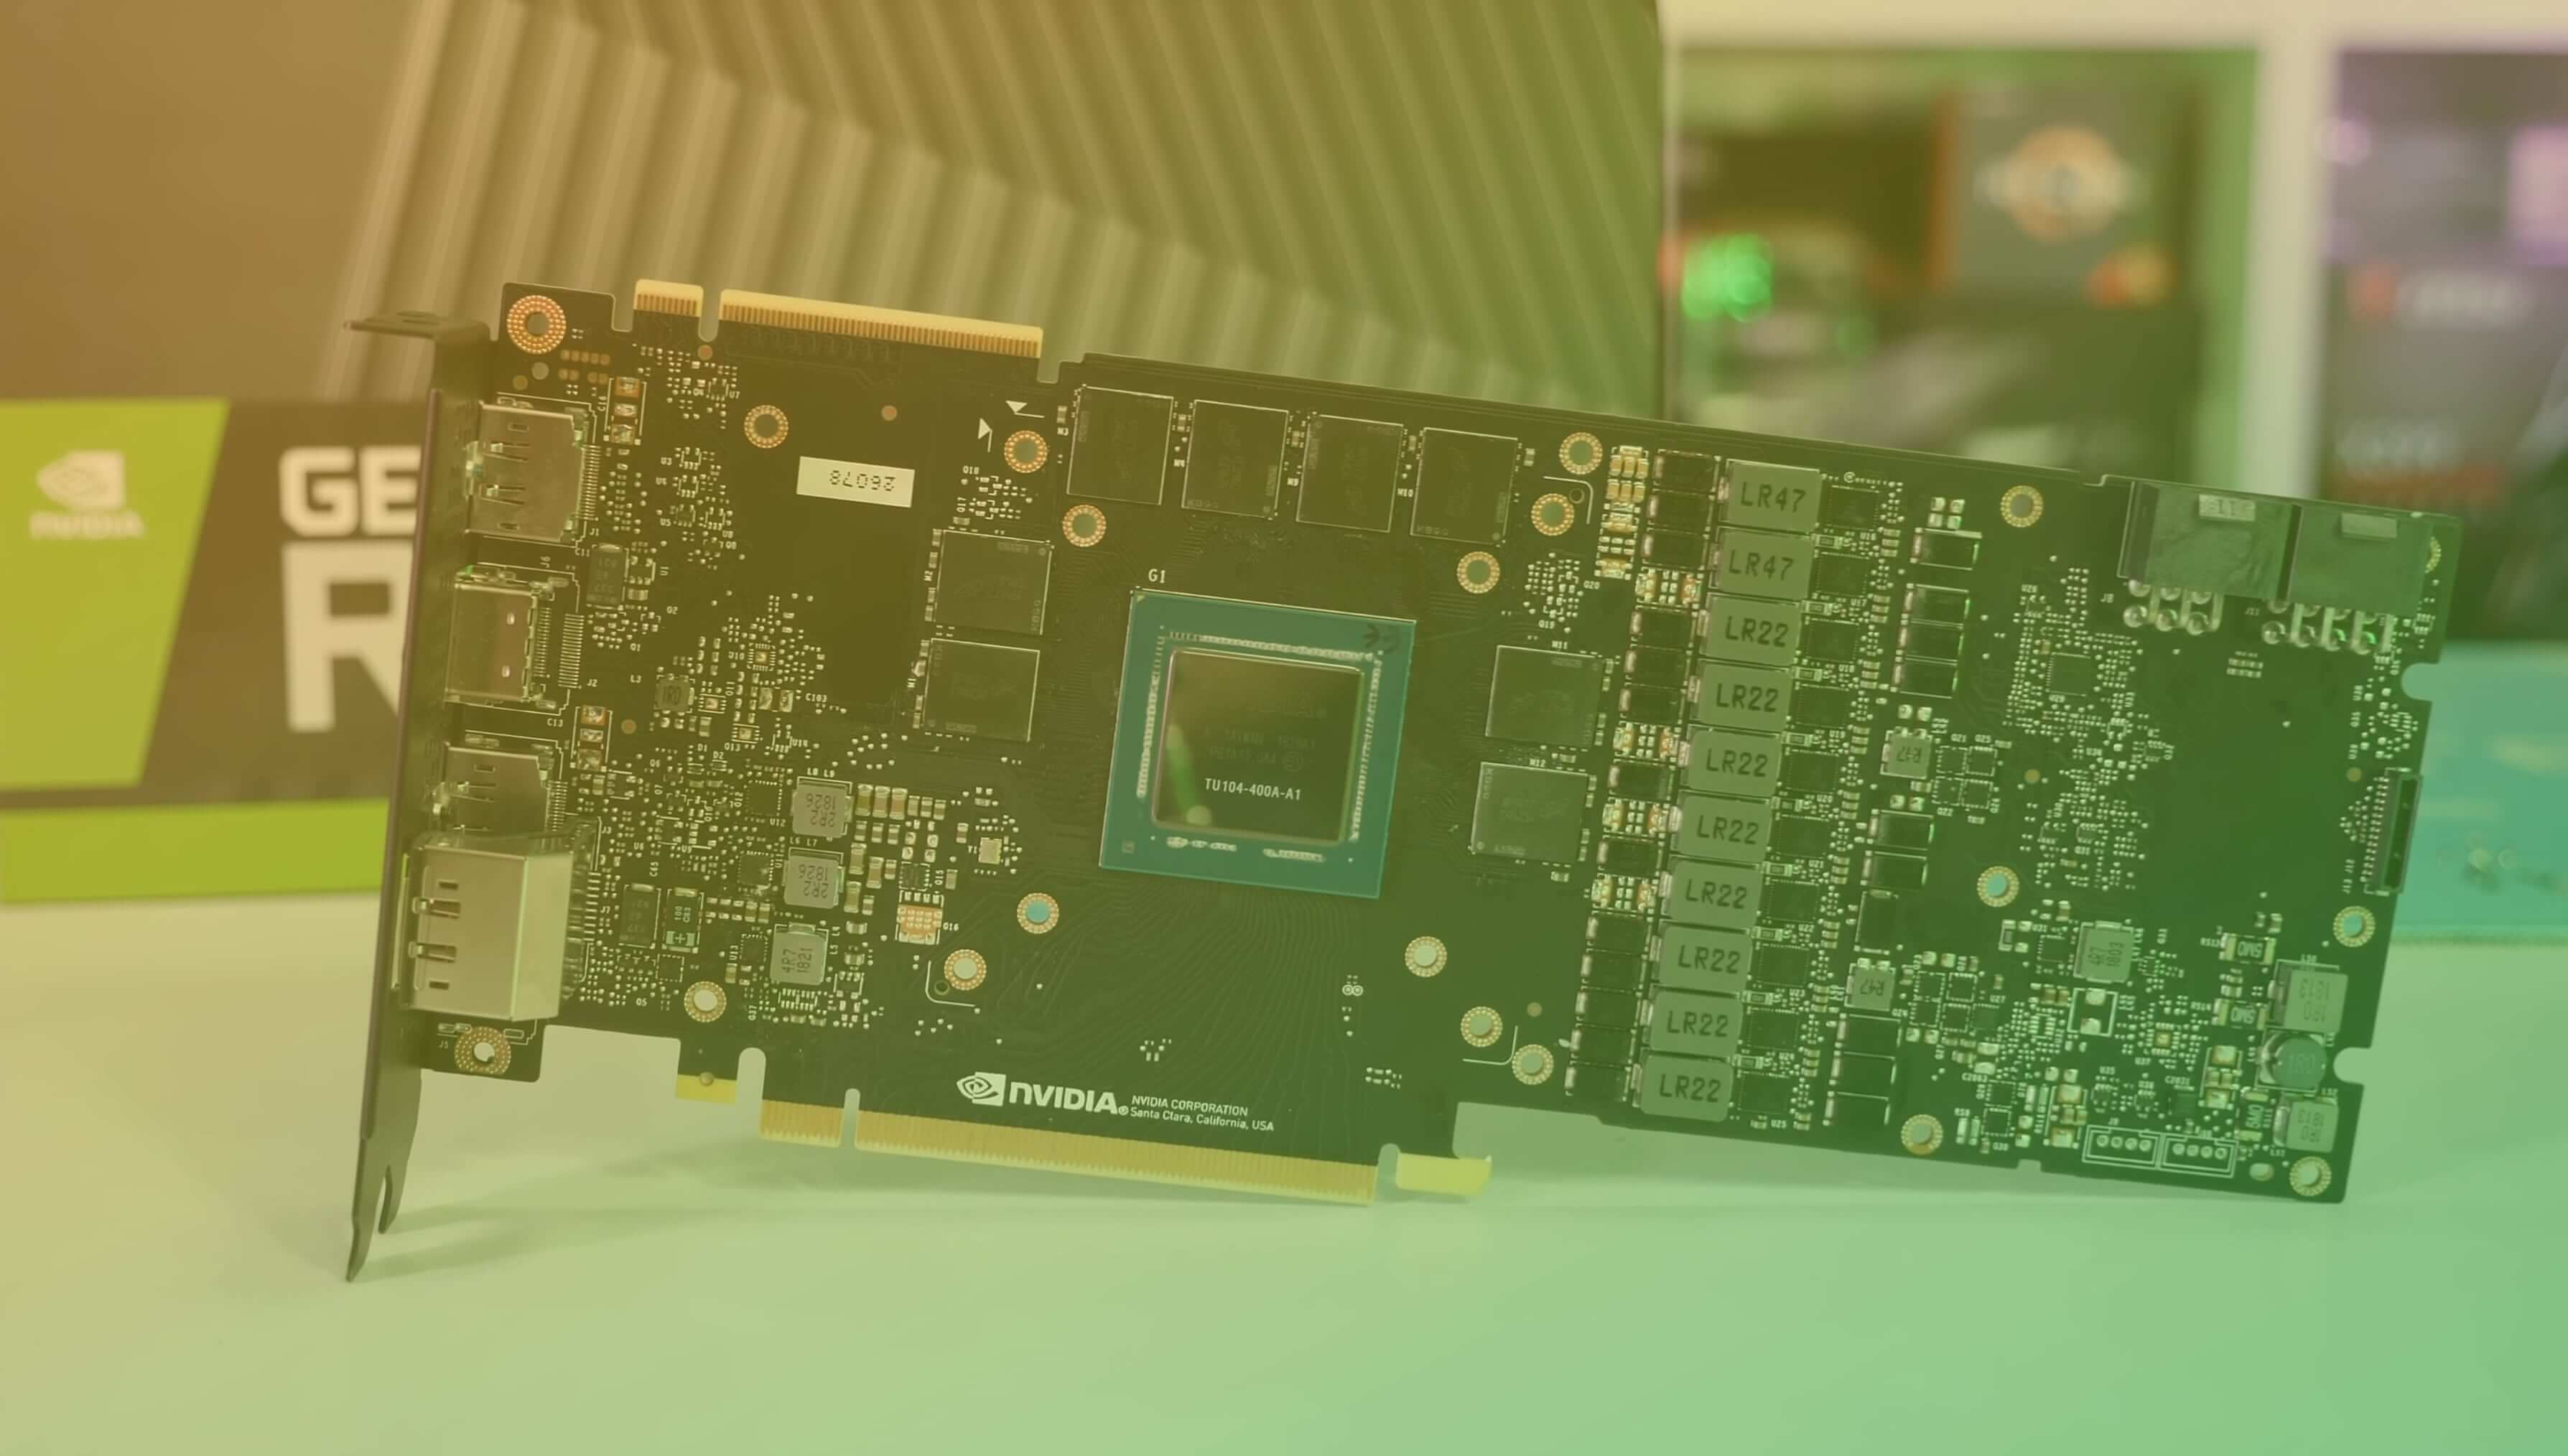 Anatomy of a Graphics Card: Dissecting the Tech Behind PC Parts